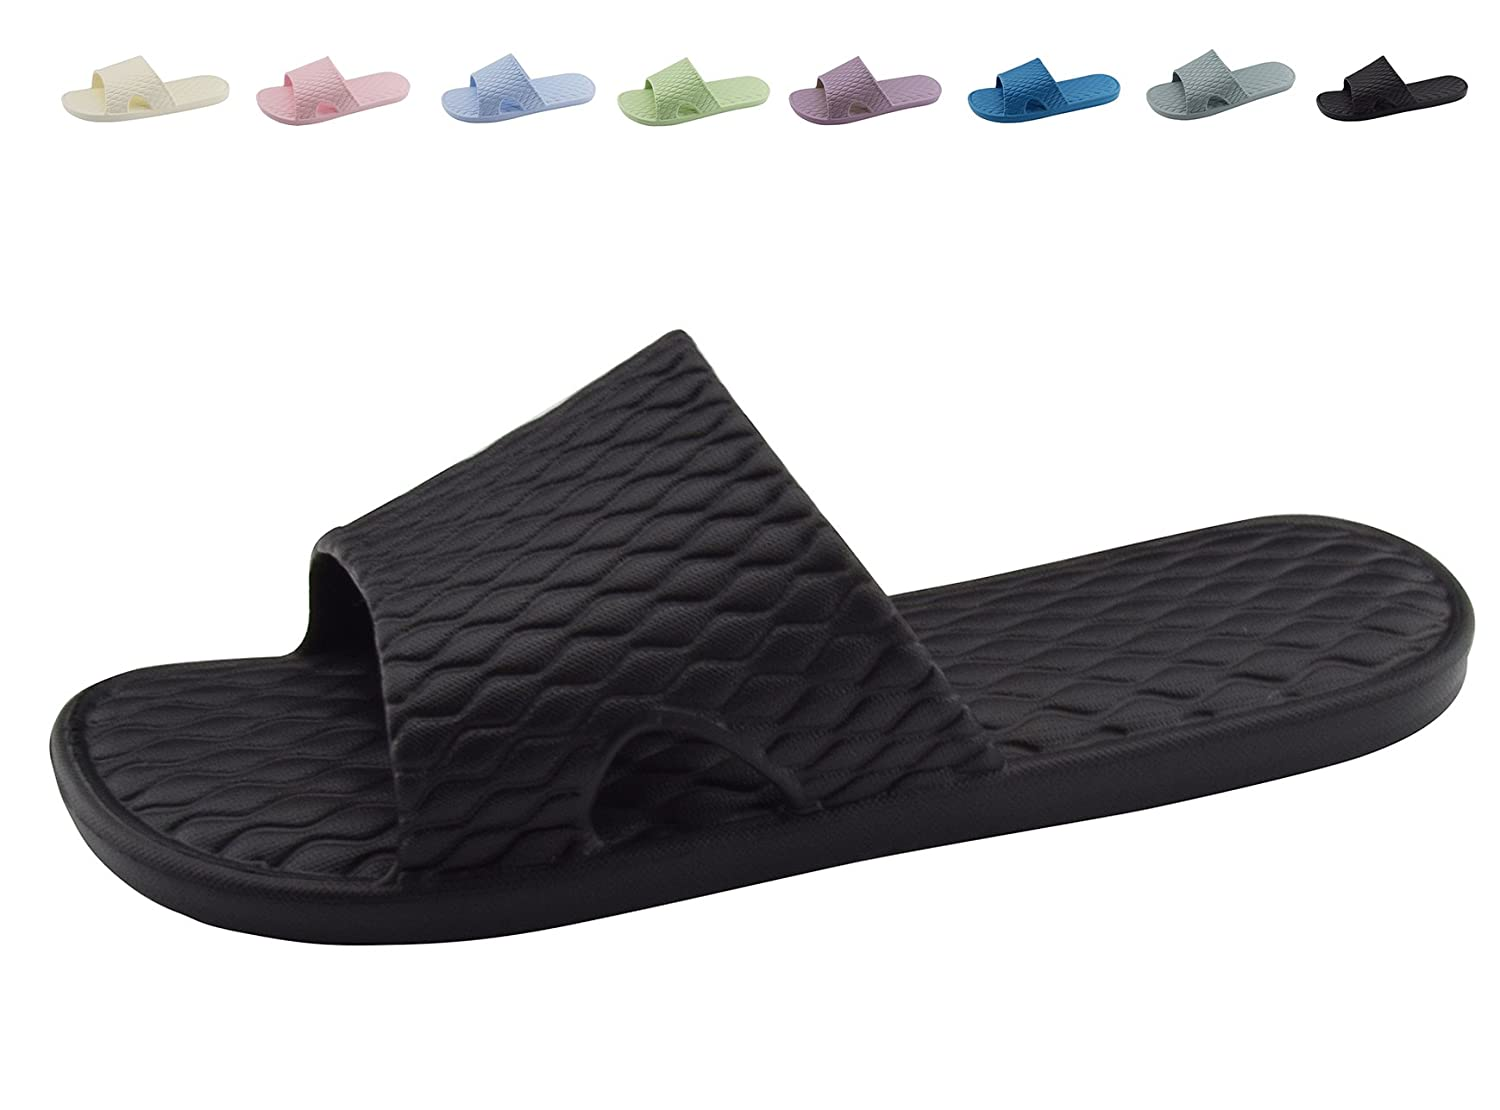 83e724b75 Amazon.com | Shower Bath Slippers Women and Men Non-Slip Home Bathroom  Sandals Indoor Outdoor Soft Shoes | Slippers